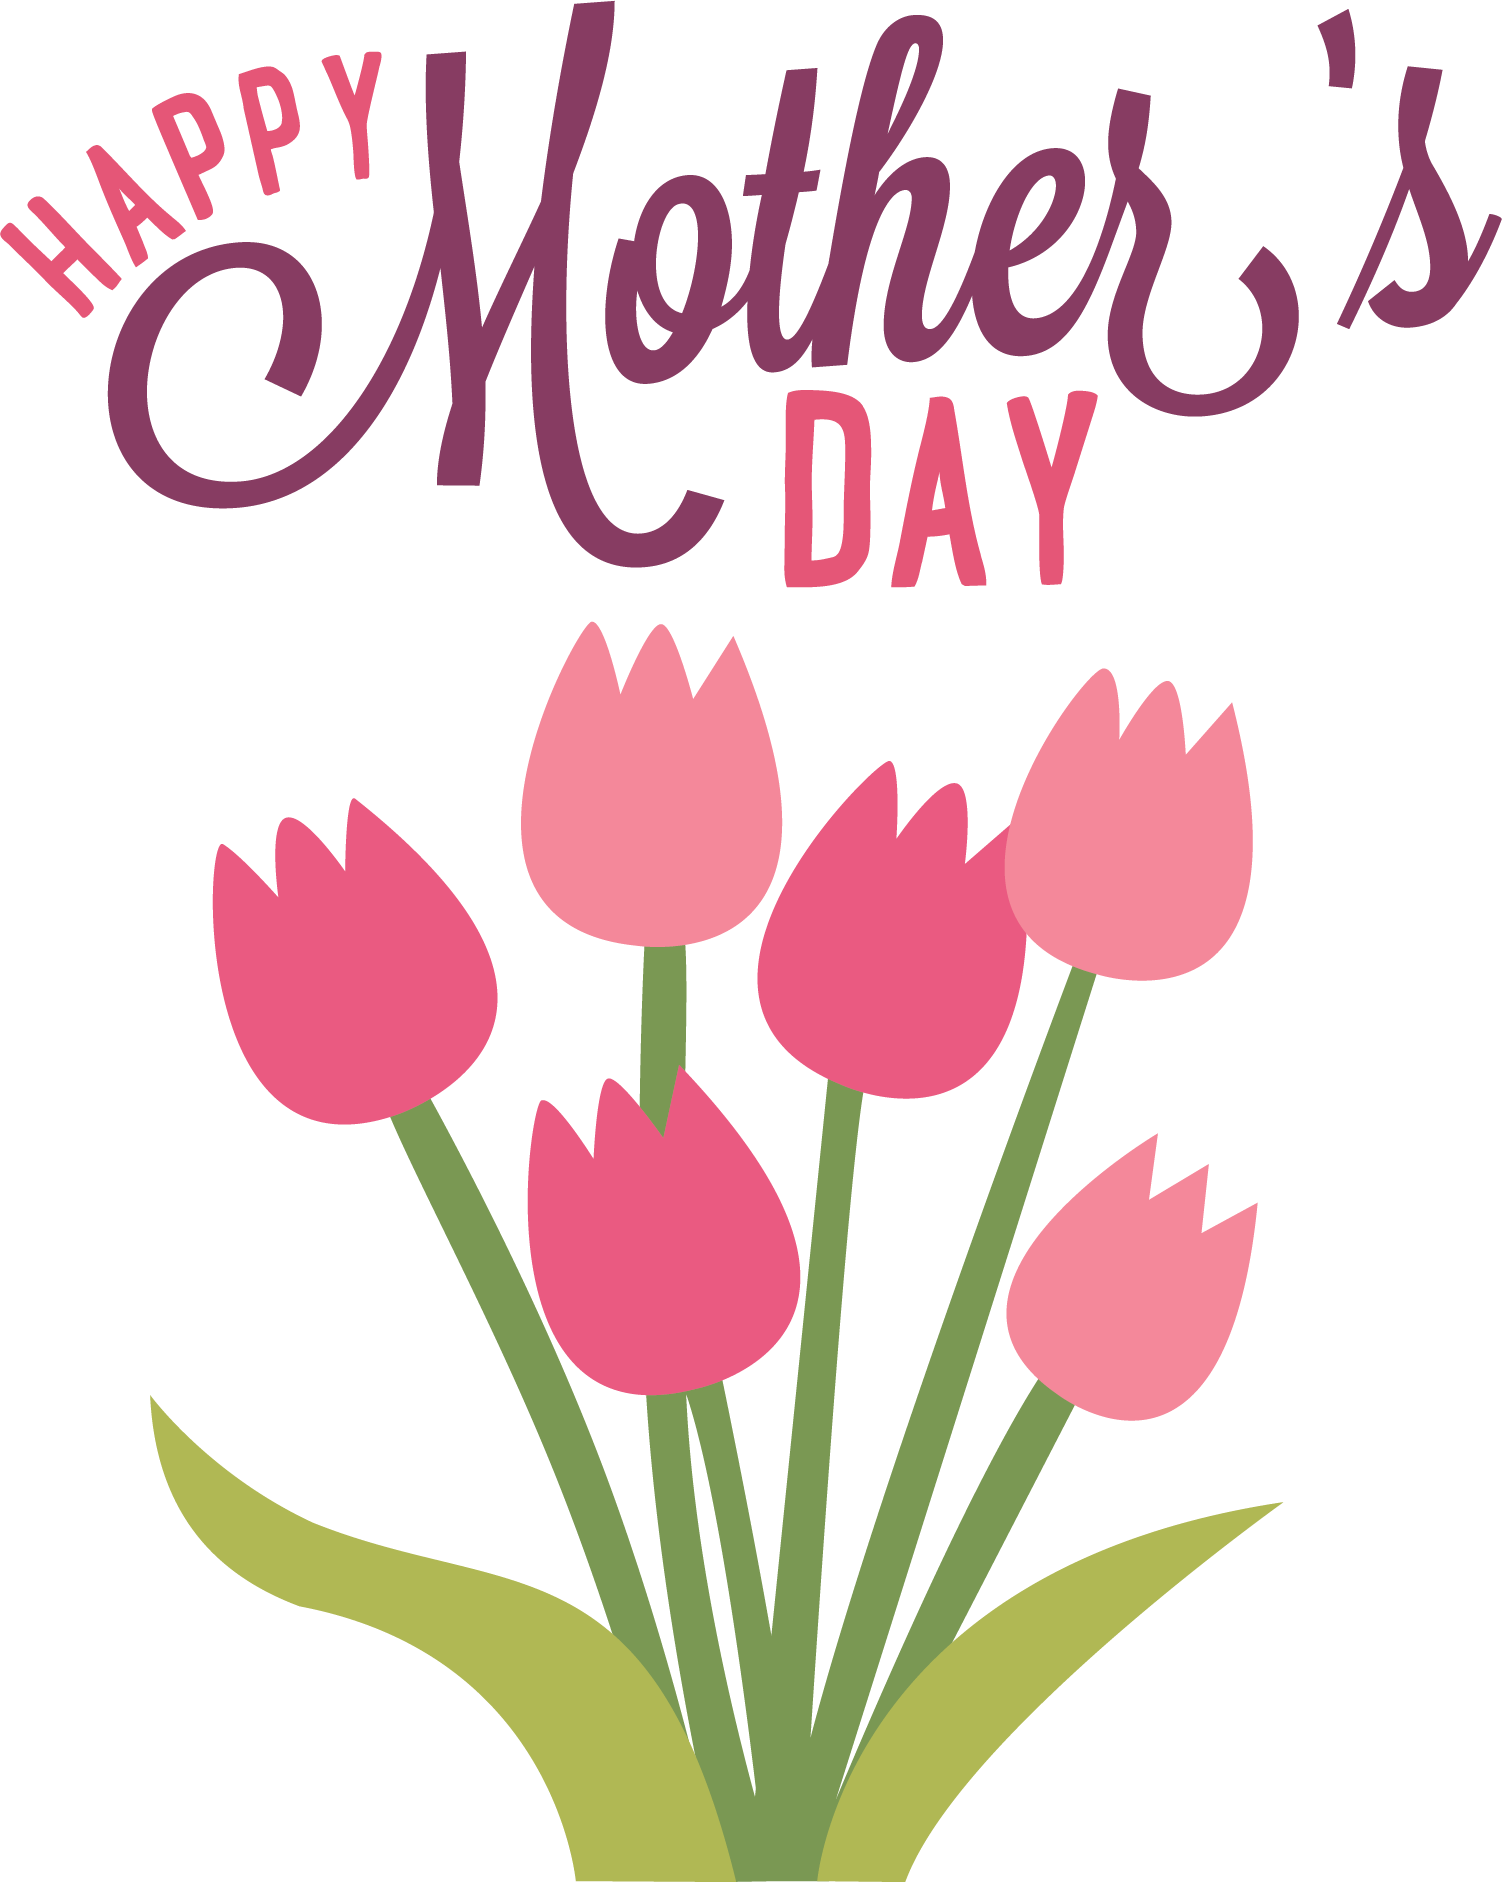 HQ Mother's Day Wallpapers | File 121.83Kb